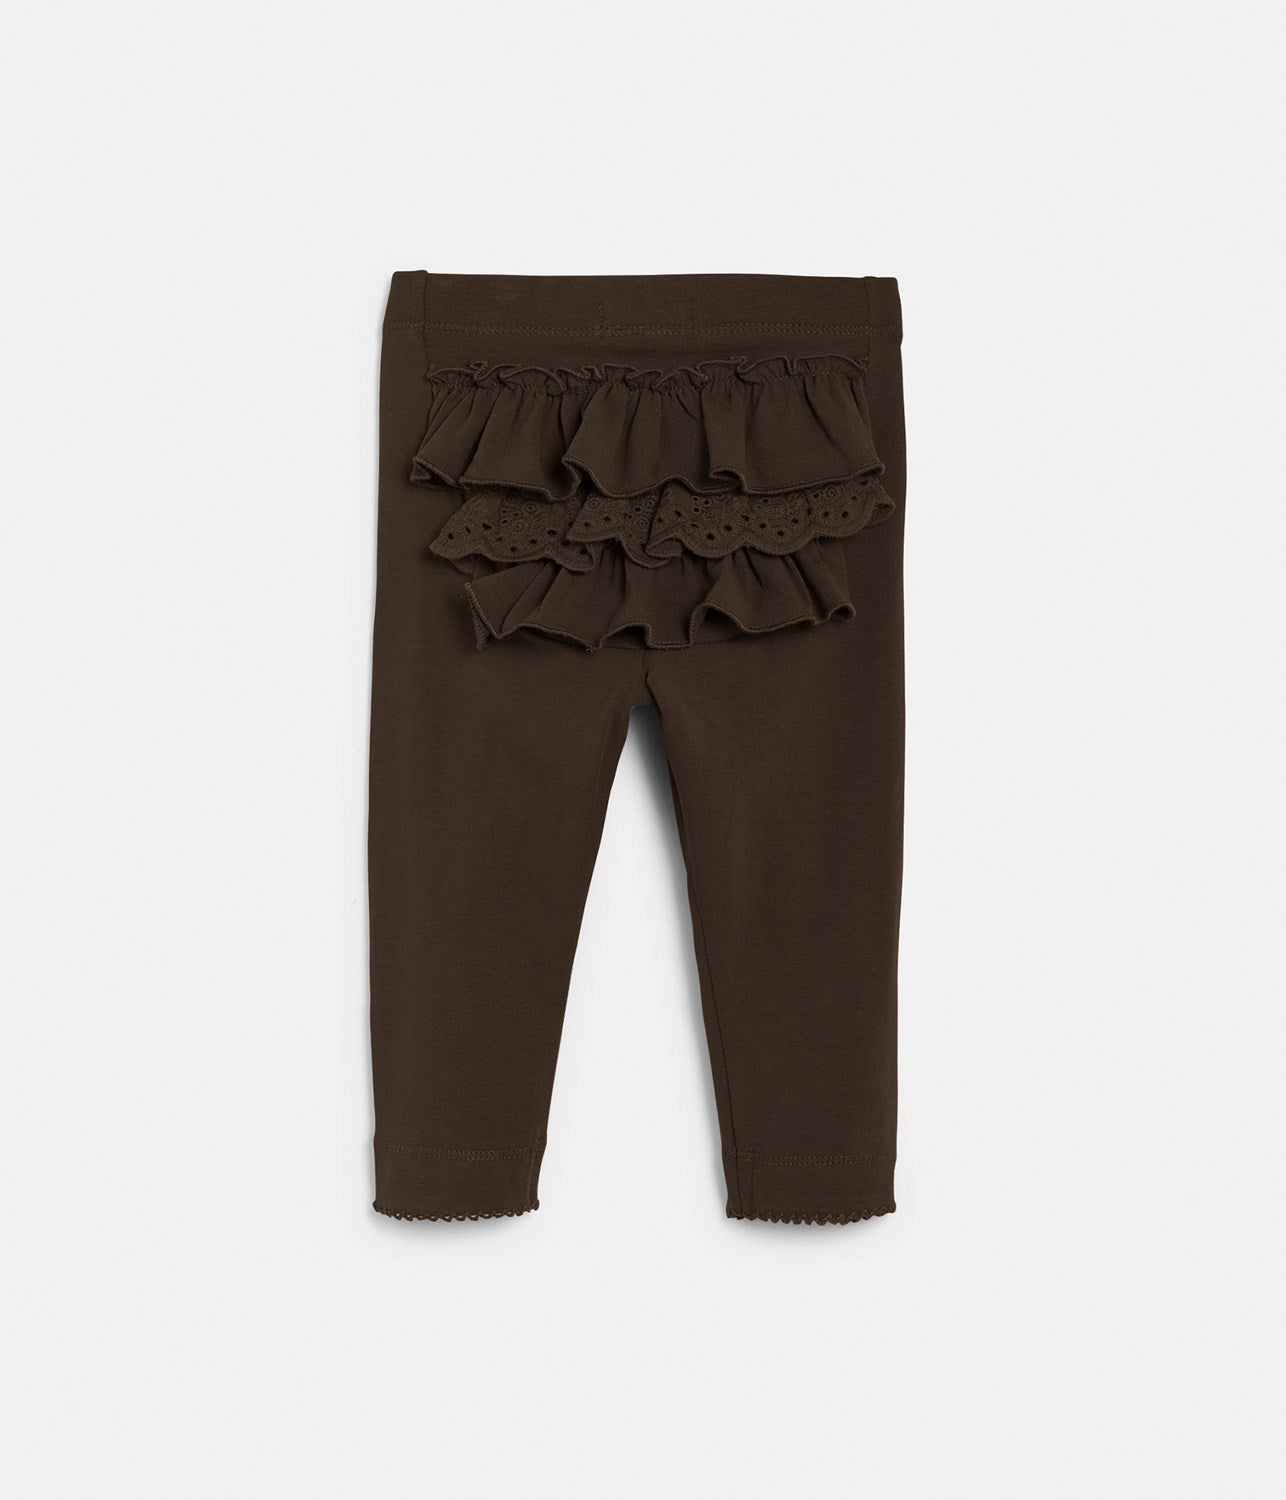 Baby brown leggings with ruffles in back